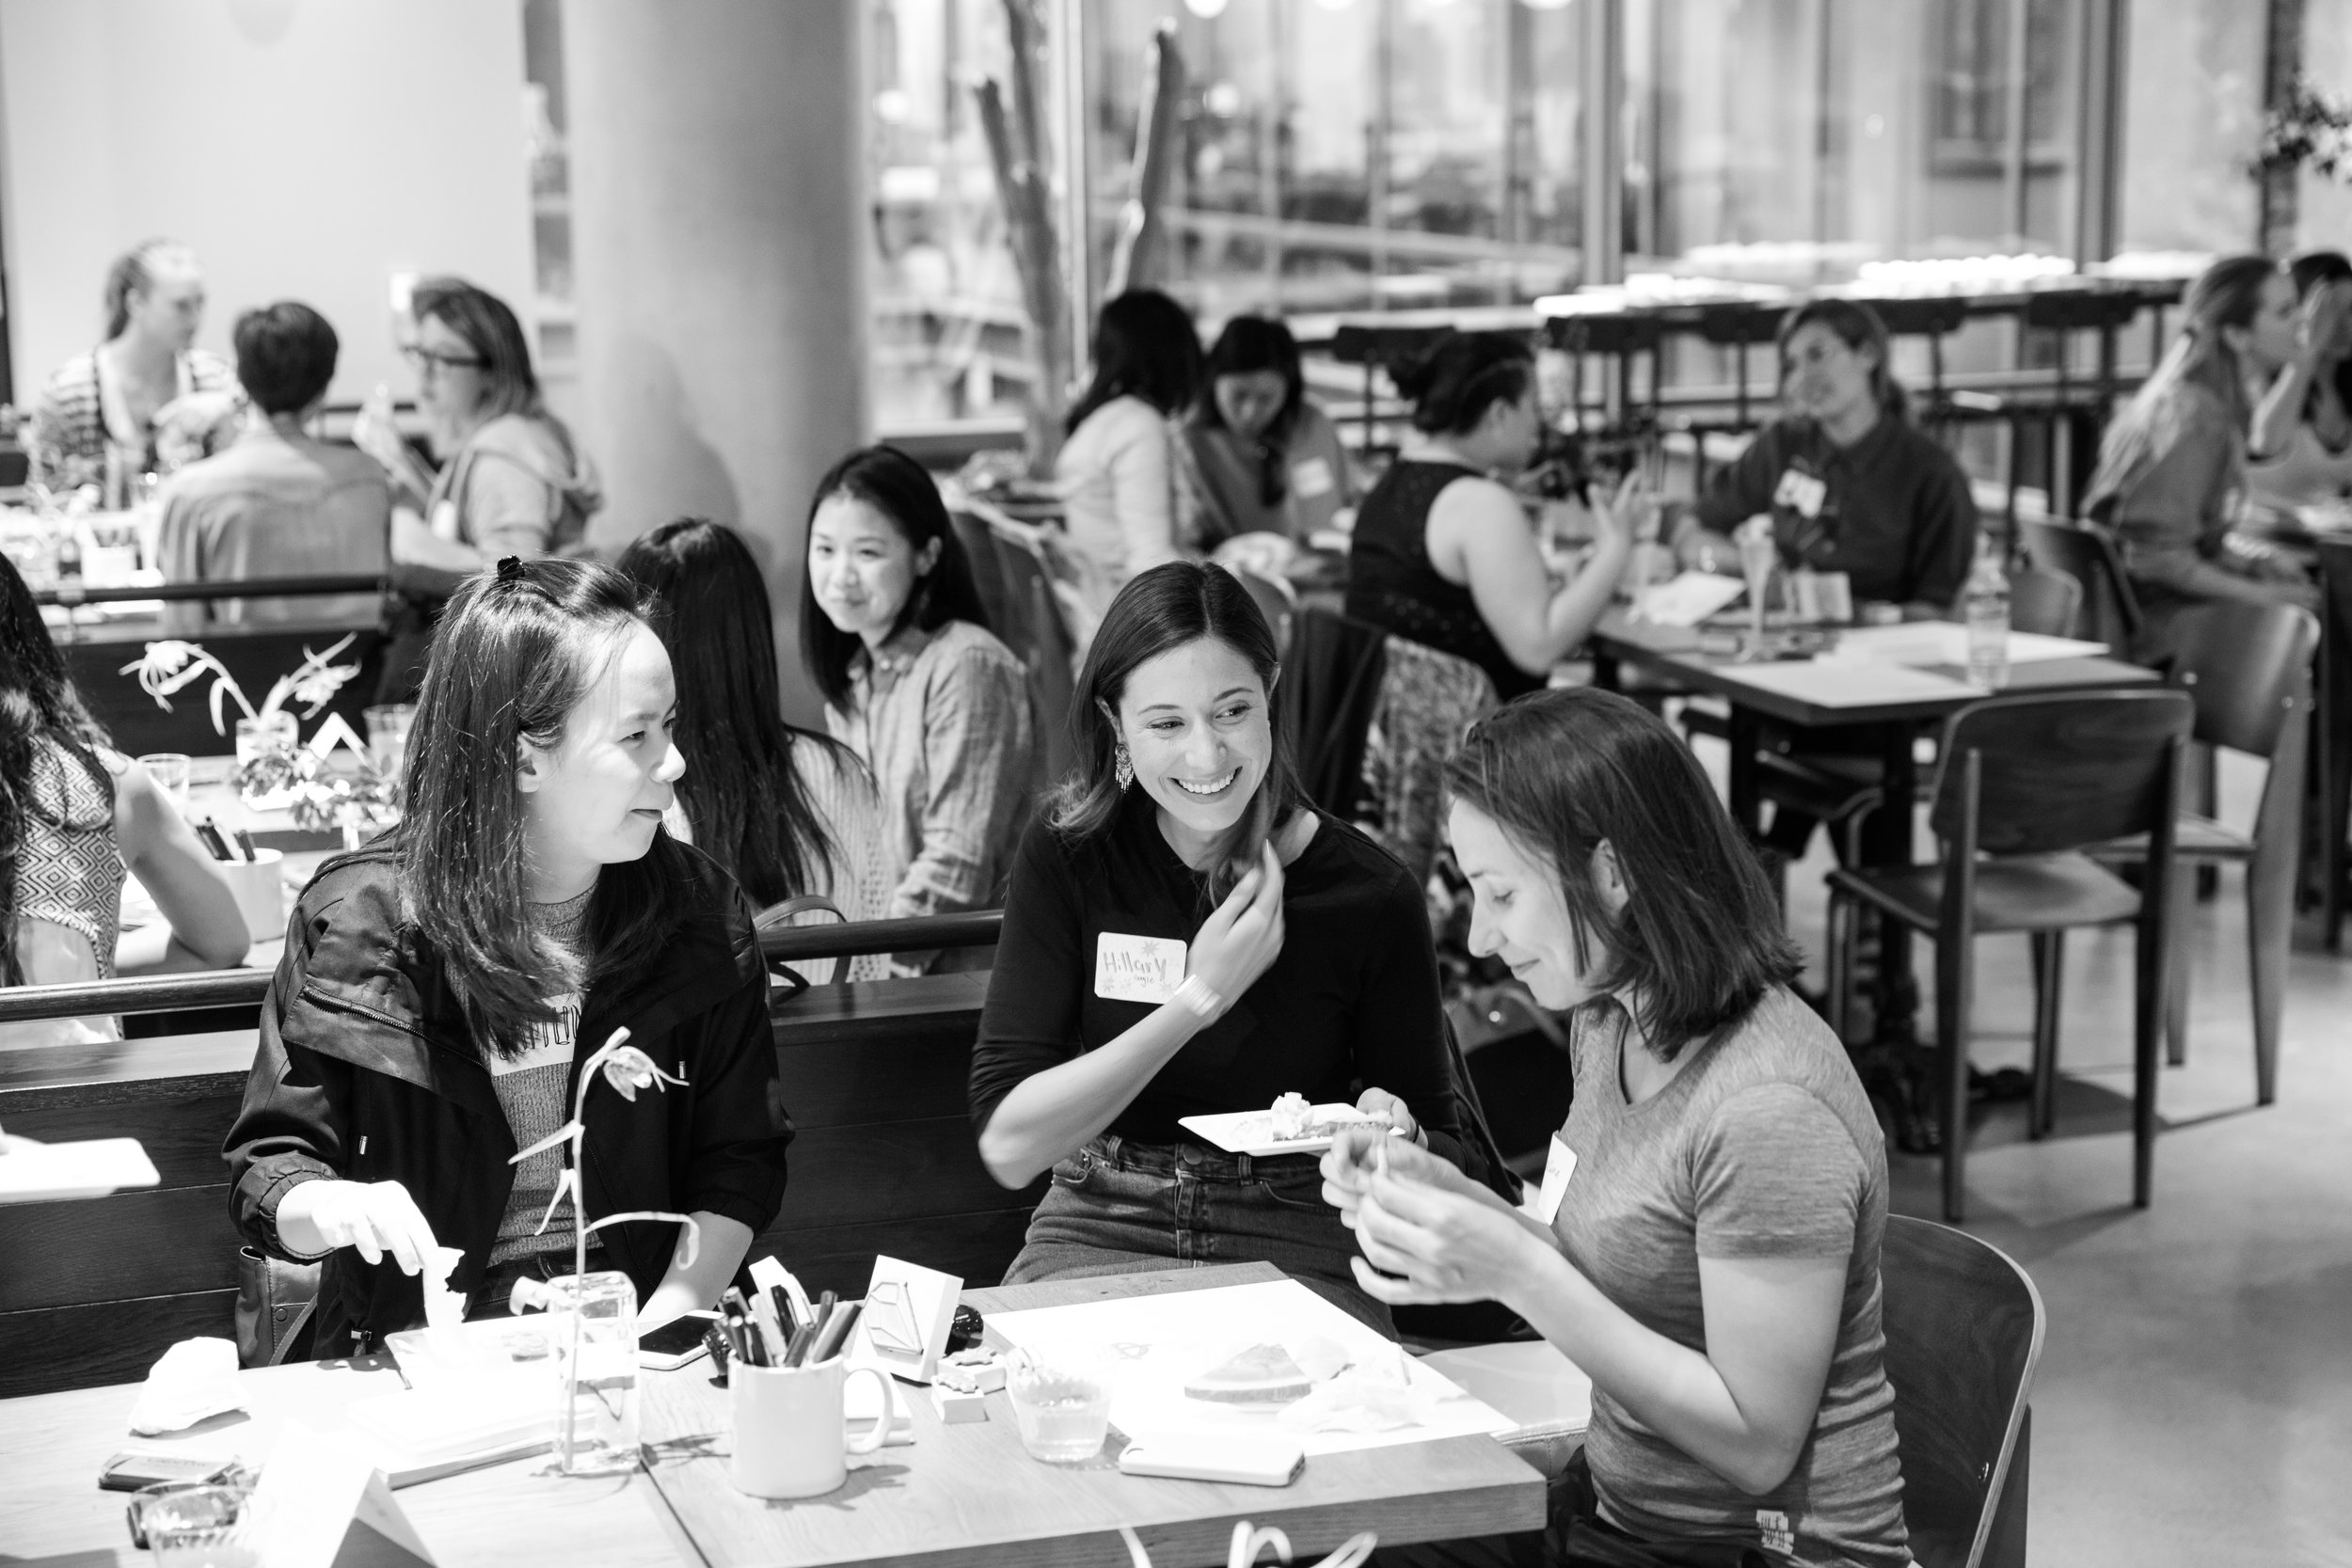 What we do - Through our events, mentorship program, and online community, we empower womxn and non-binary folx to bring their whole selves to work — building confidence, balancing the ratio in the UX industry, and affecting change on a greater scale. Read our story